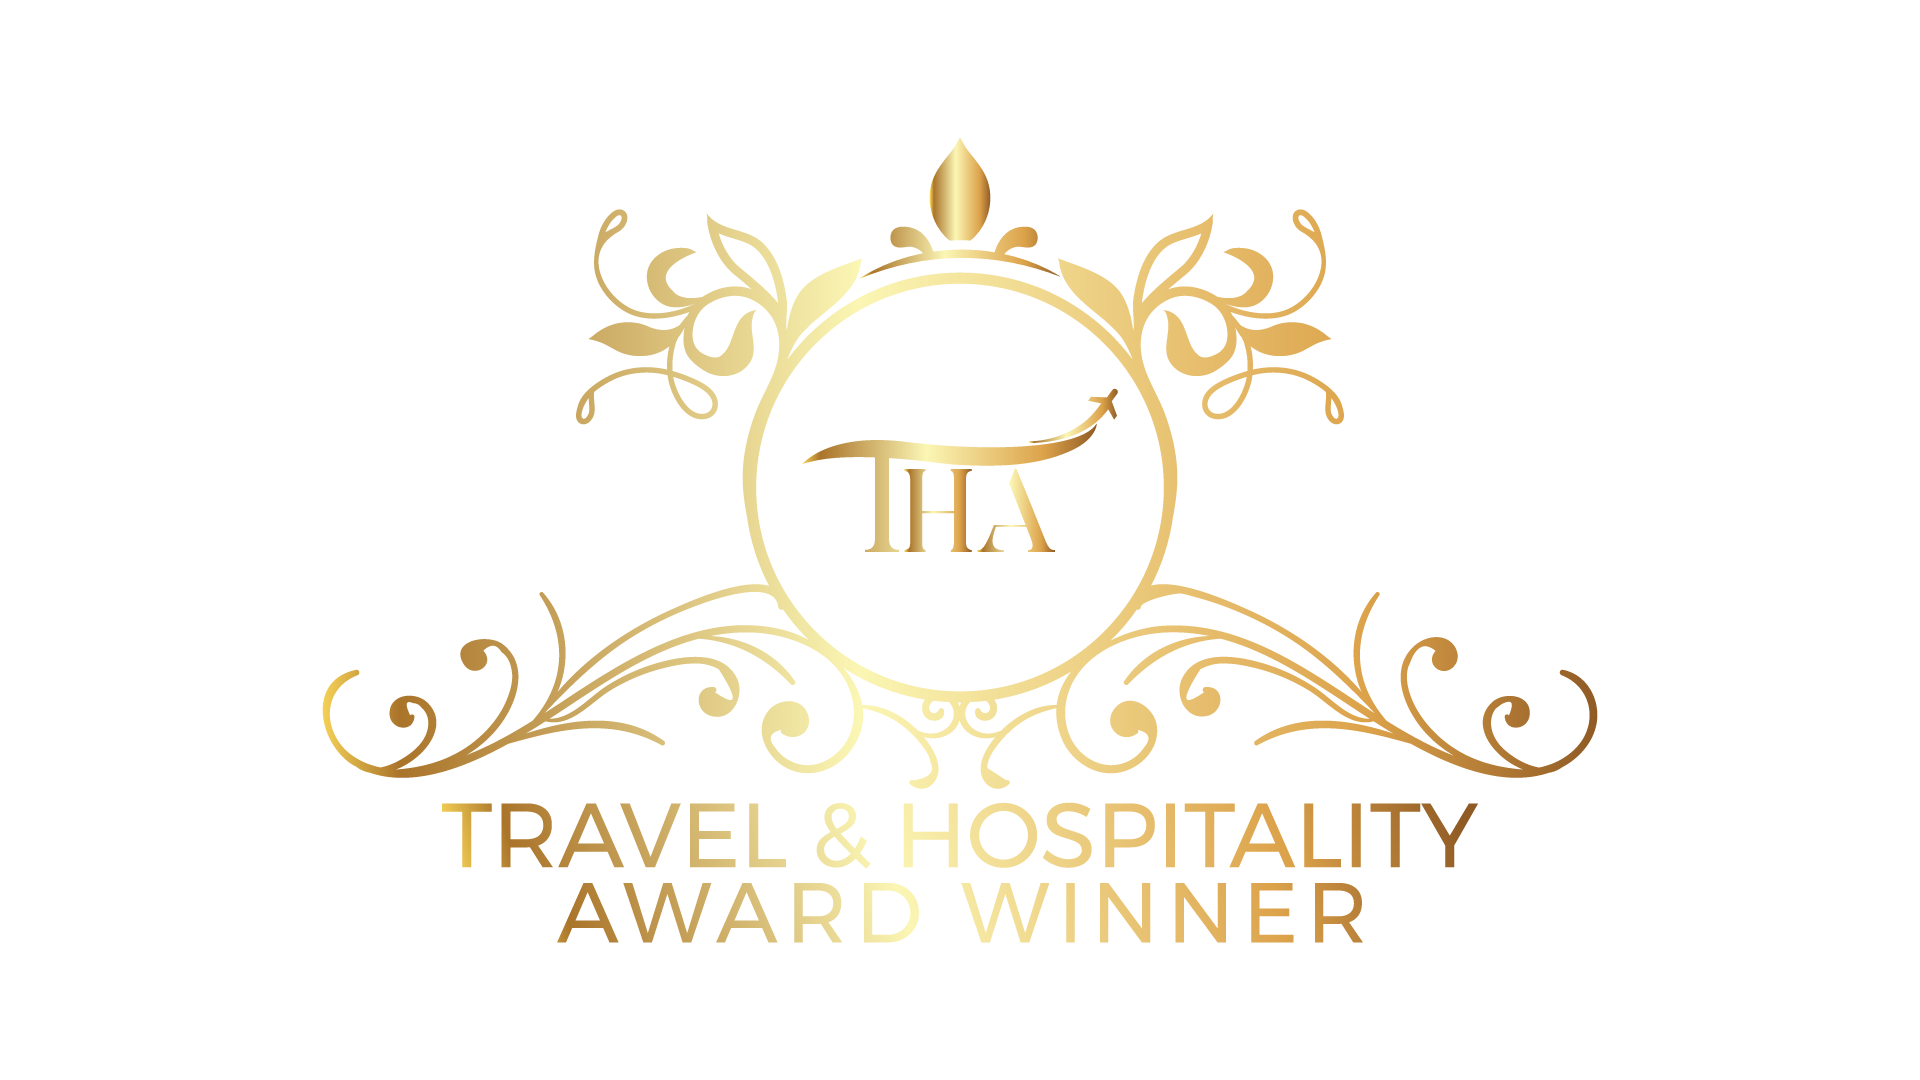 Top Private Tour- Travel And Hospitality Award Winner Logo Golden-01.png